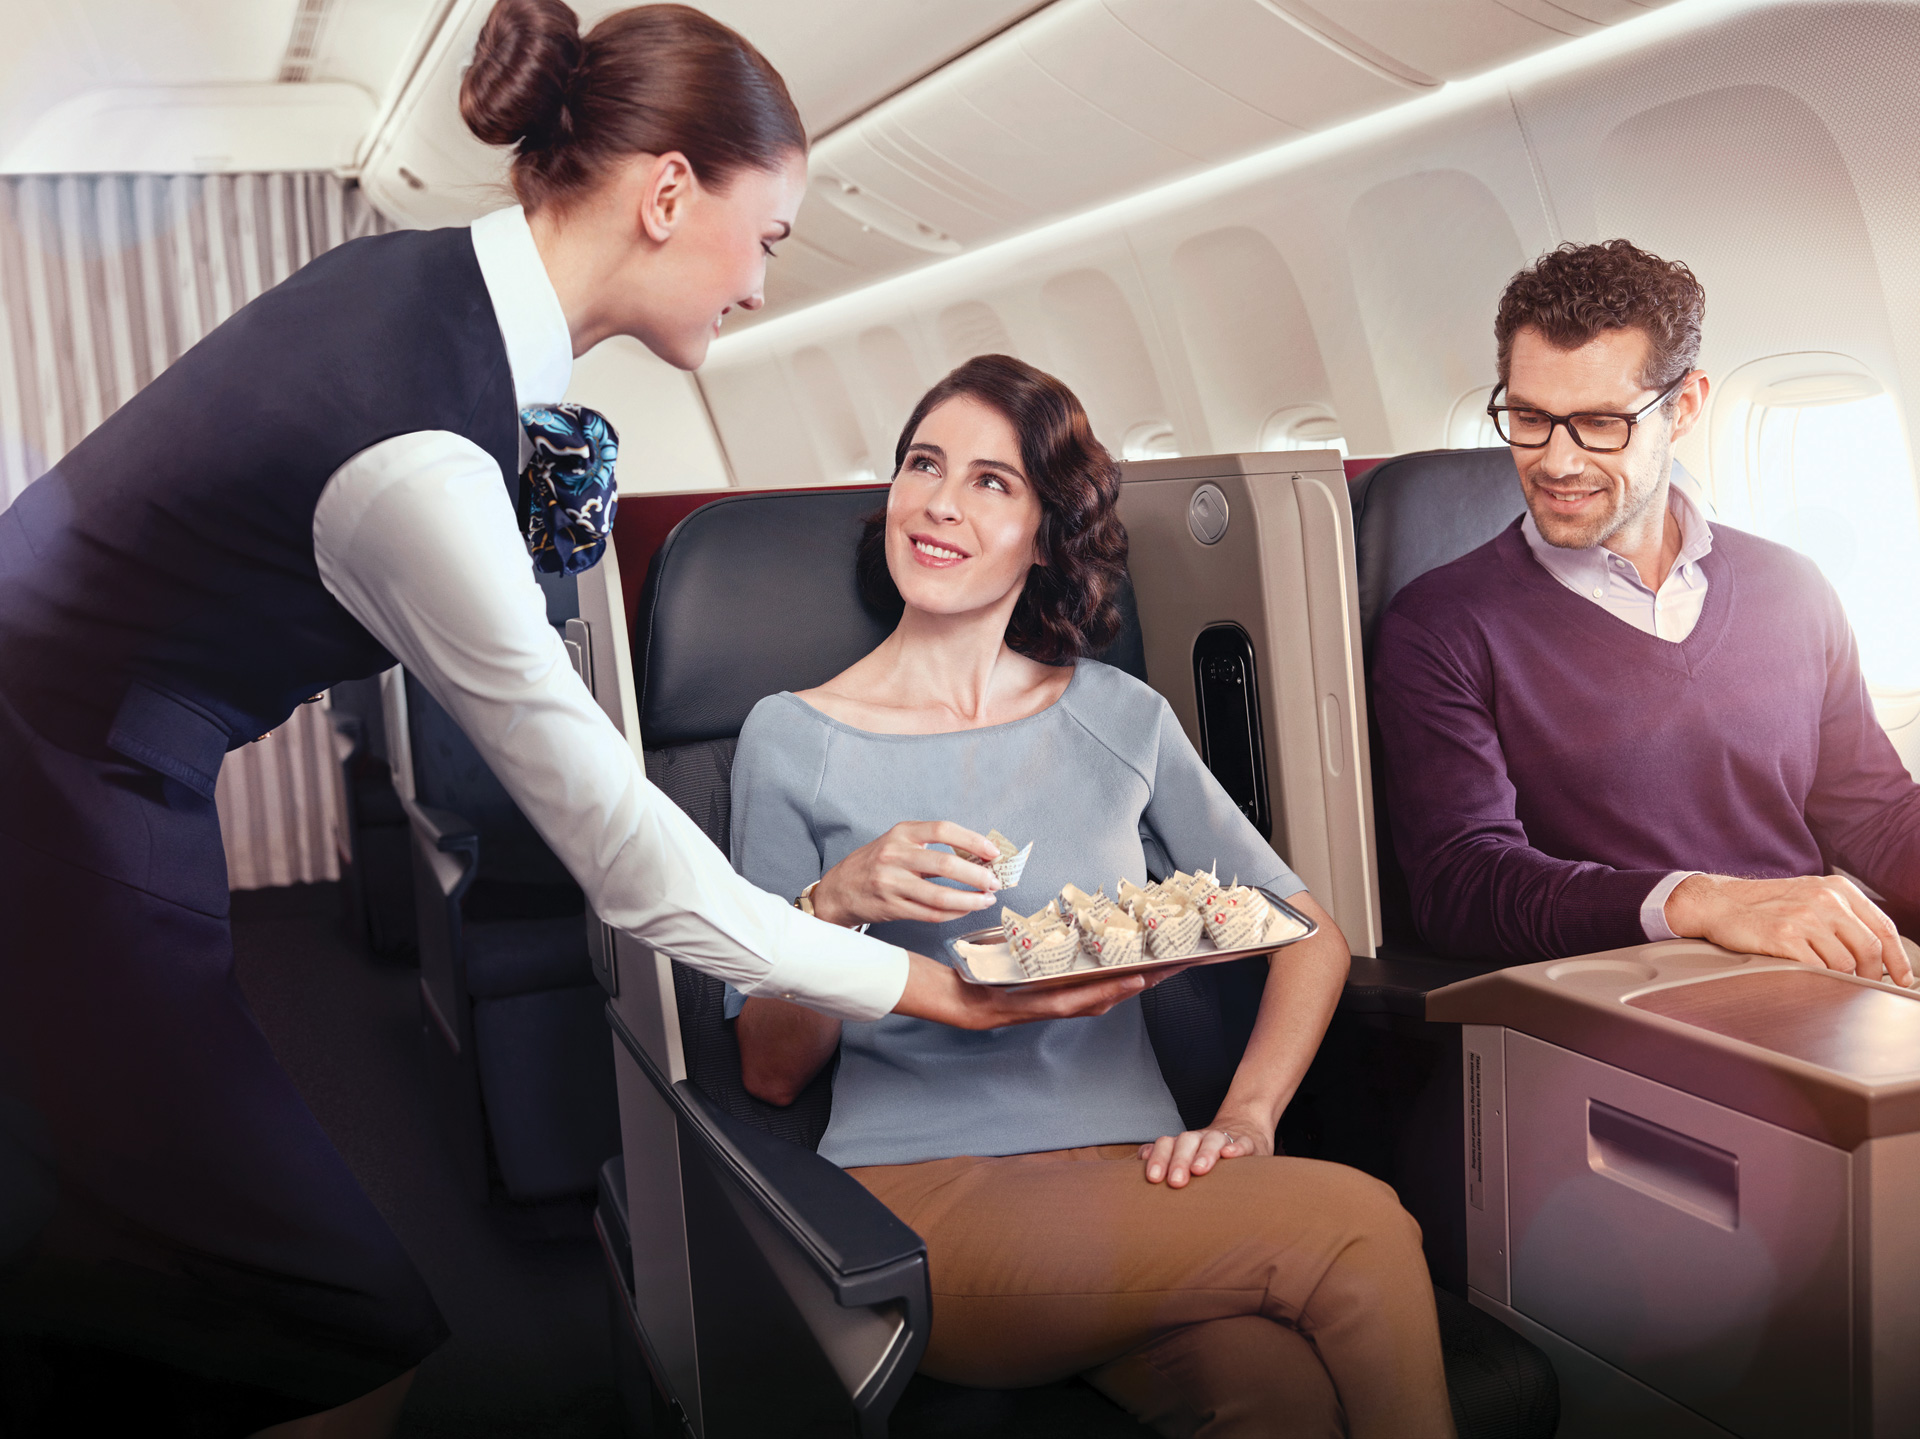 Turkish Airways Business Class. SkyLuxTravel Blog. SkyLux - Discounted Business and First Class Flights